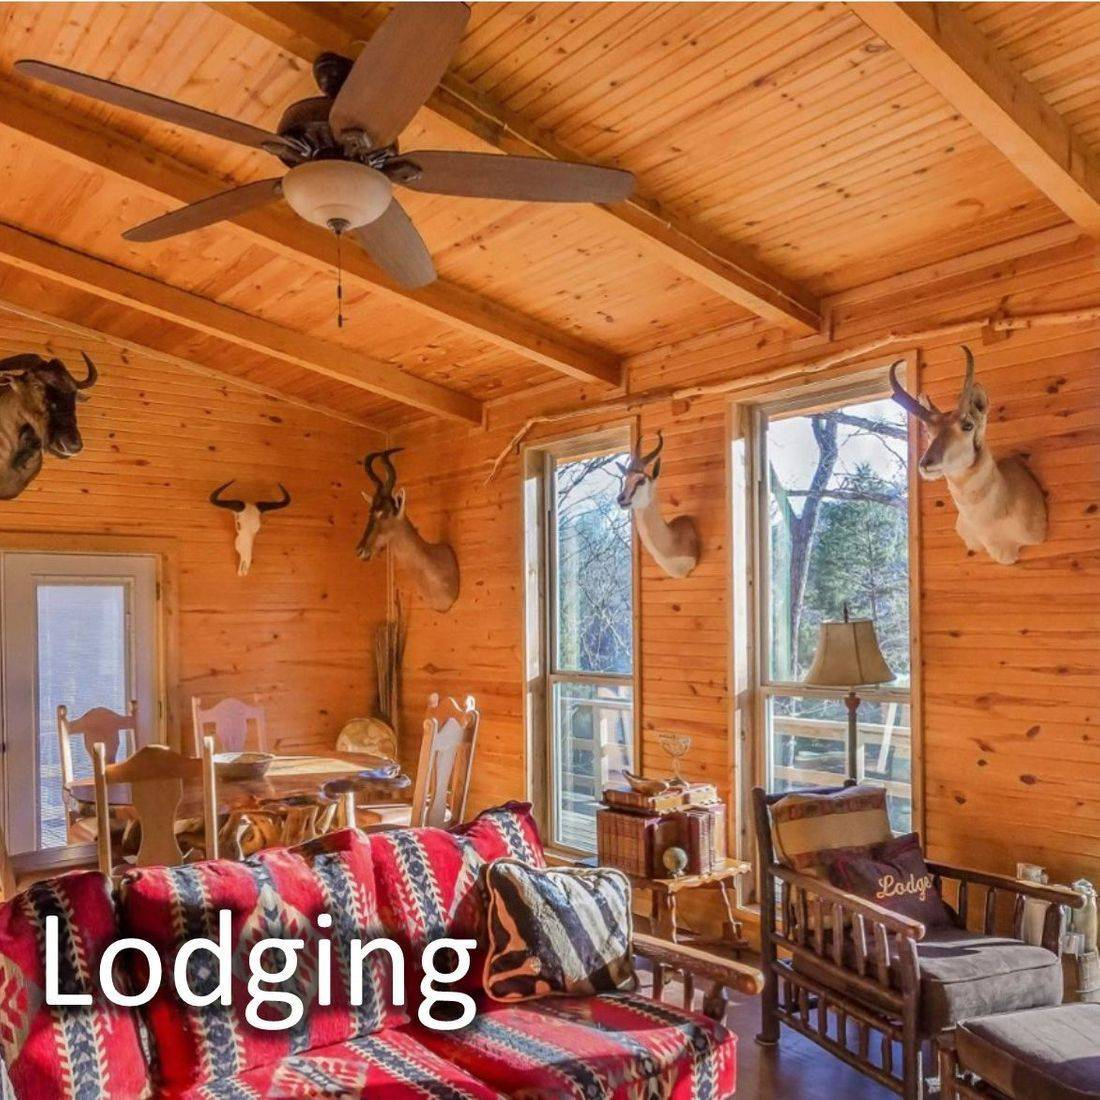 Lodging and Cabin Rental